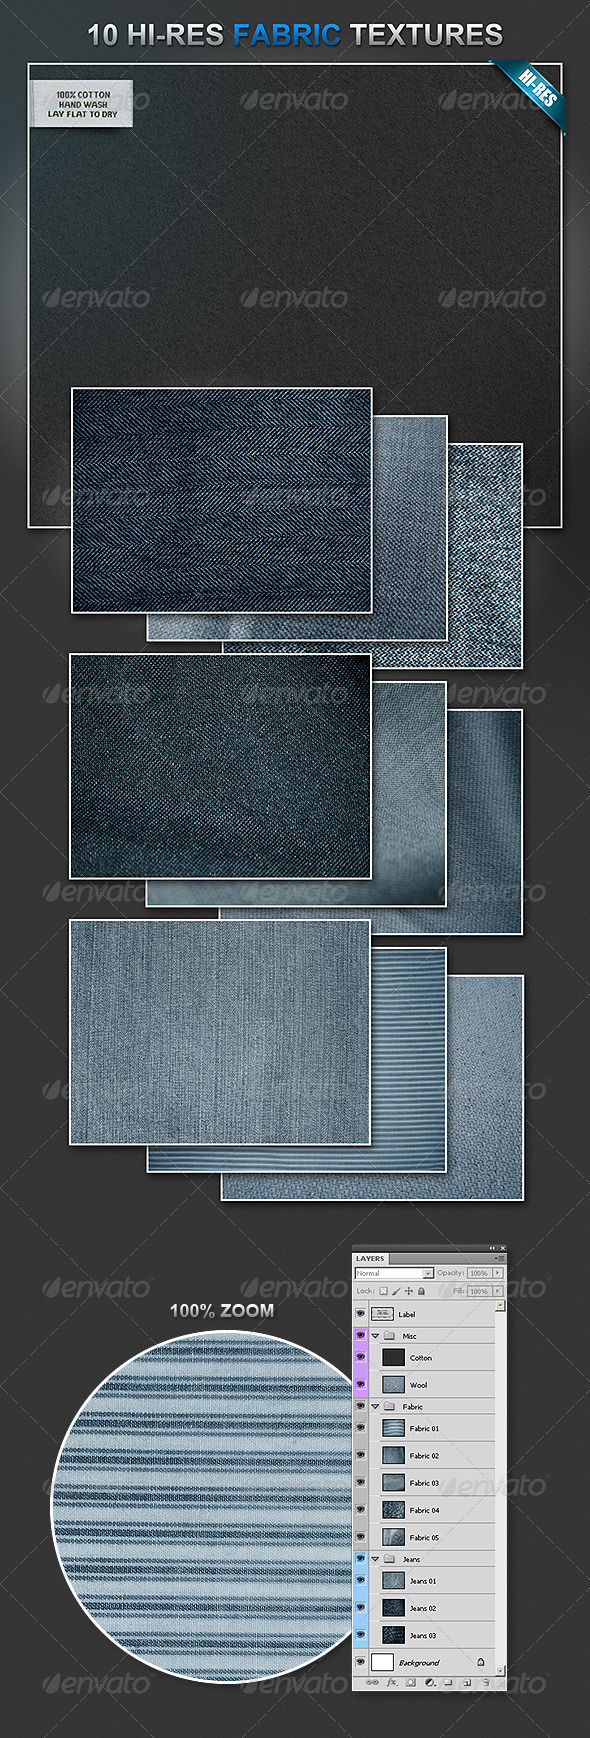 Graphic River 10 Fabric Materials Graphics -  Backgrounds 507447